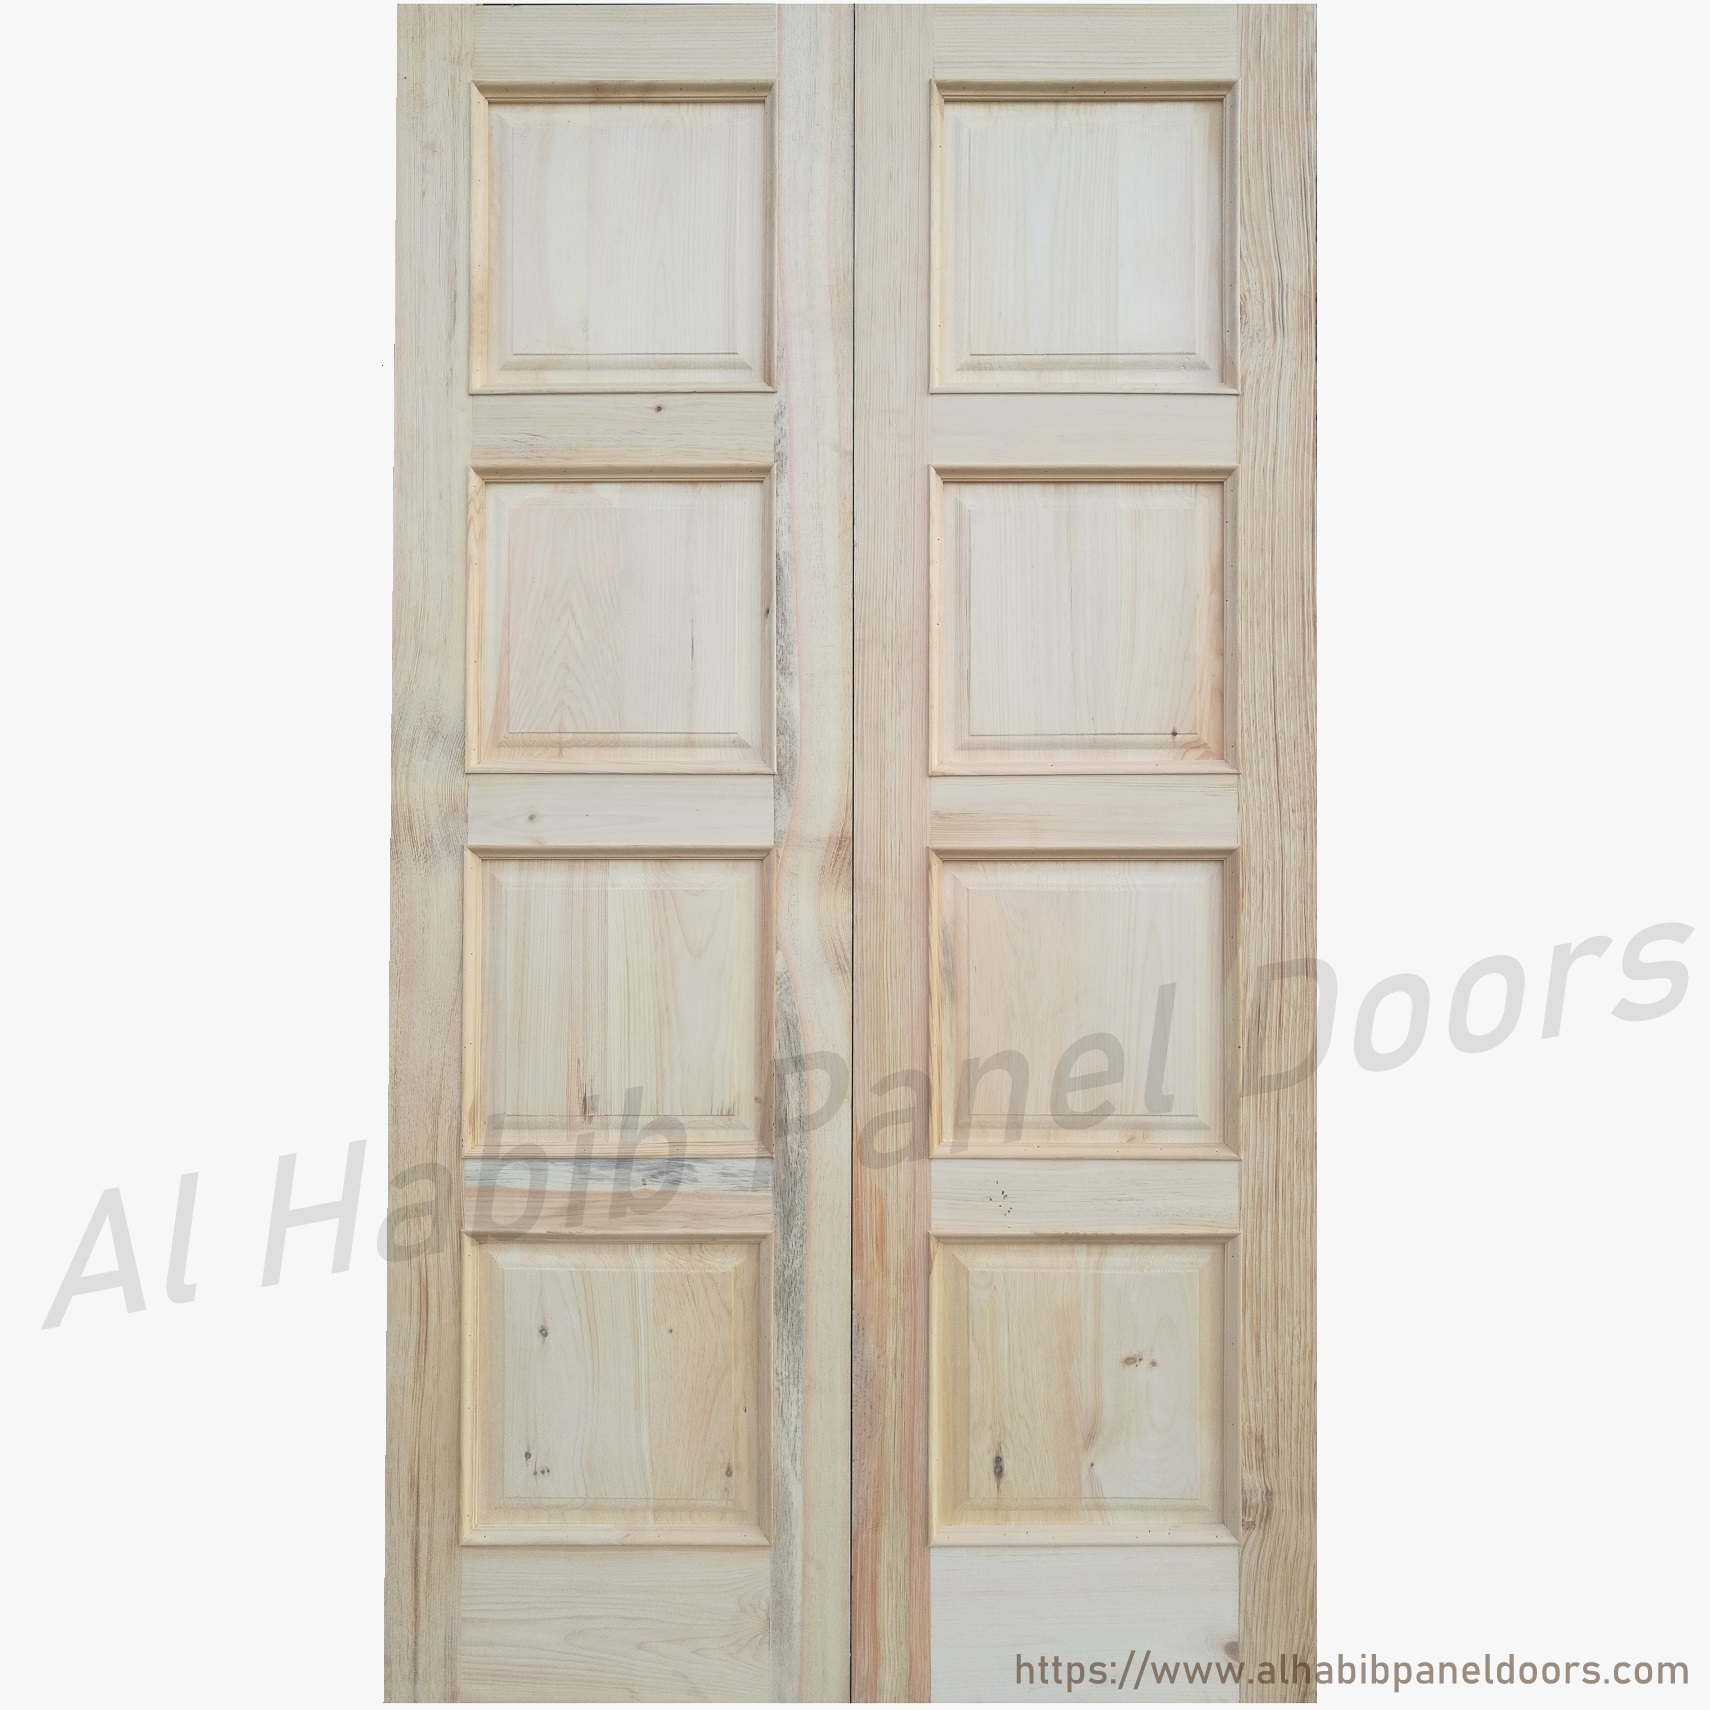 Main double door hpd327 main doors al habib panel doors for French main door designs